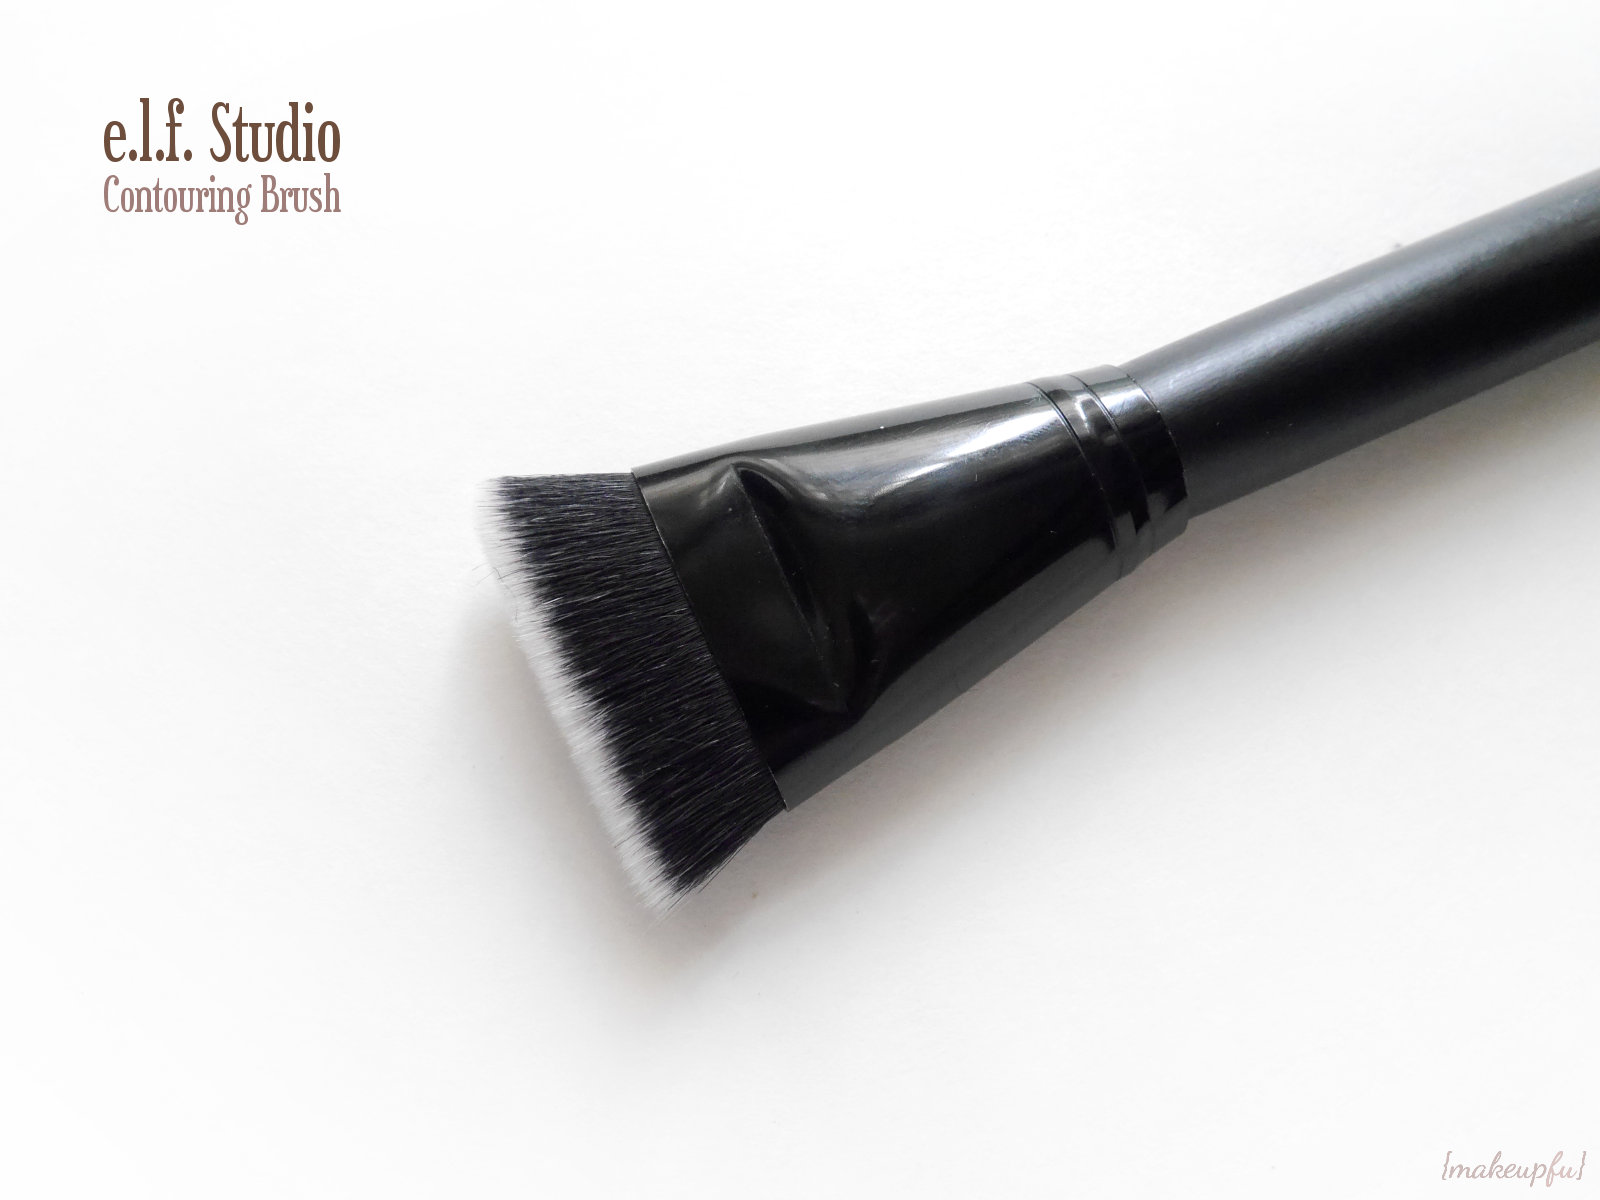 Contouring Brush by e.l.f. #19